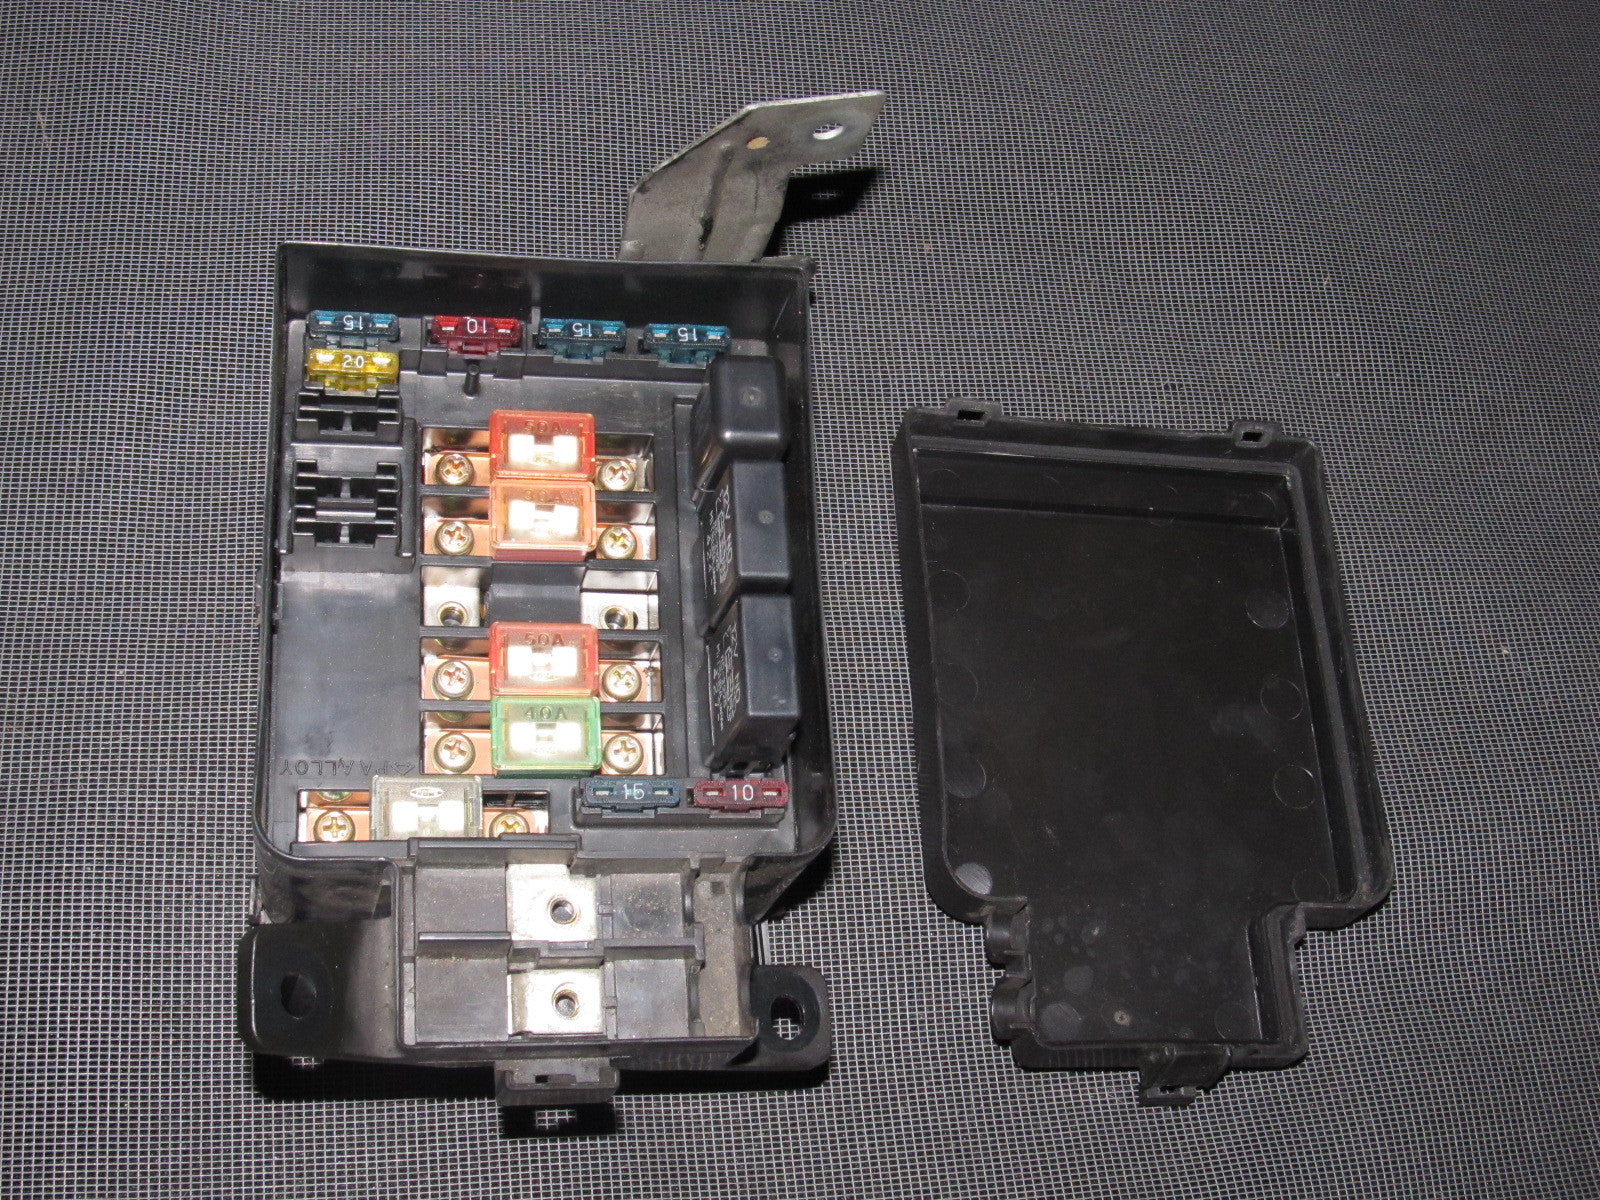 93 94 95 honda del sol oem b16 engine fuse box with relays ... 93 94 95 honda del sol oem interior fuse box autopartone 93 honda del sol fuse diagram